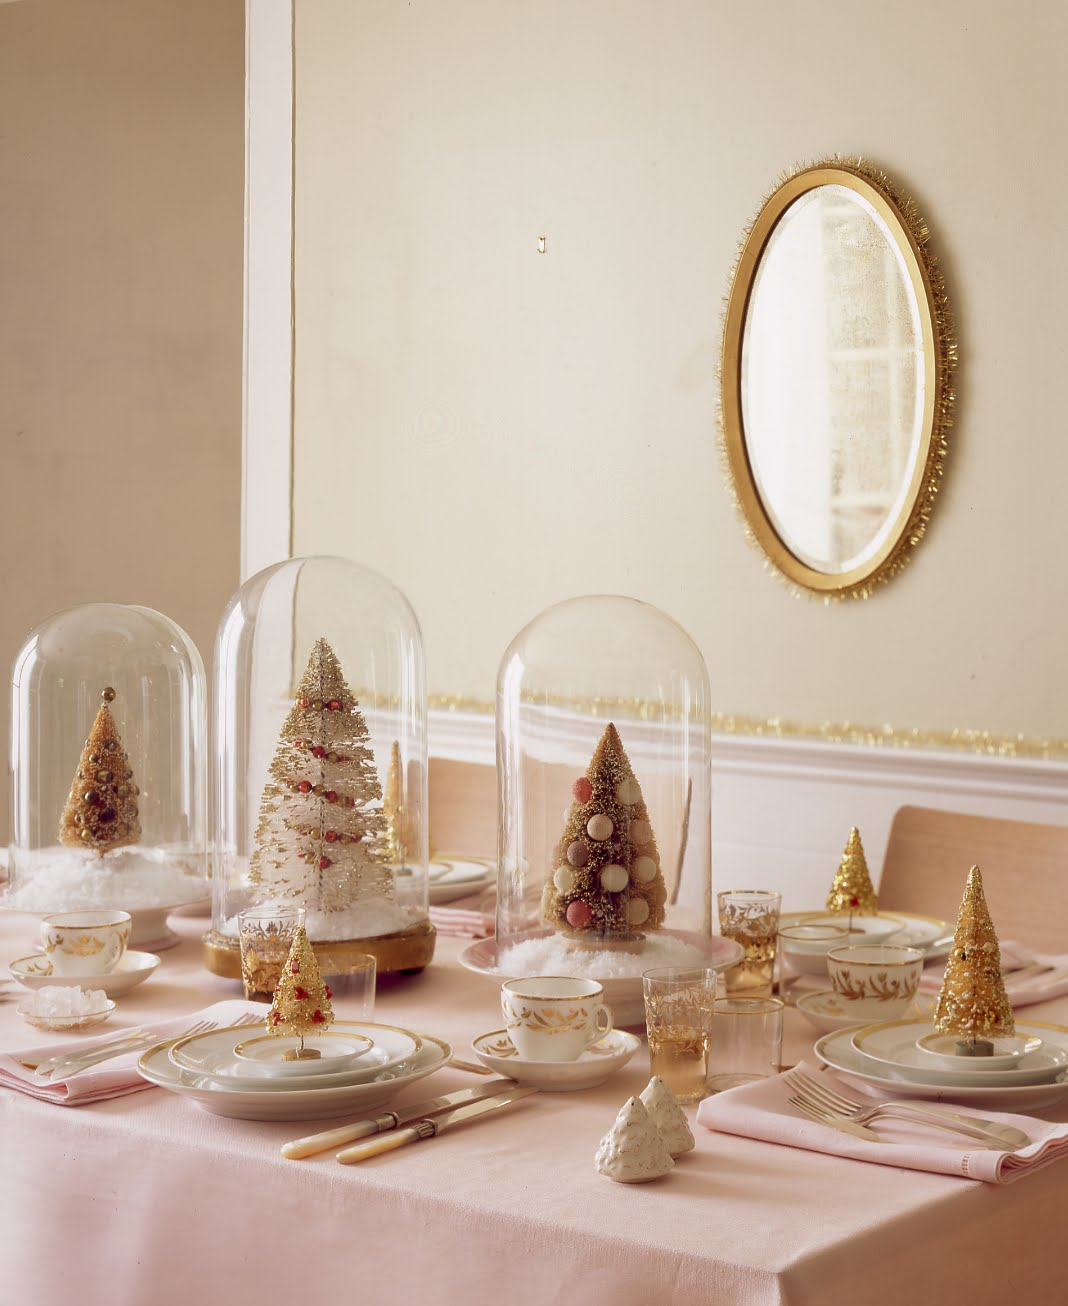 Bad blog about design holiday decorating the dining table for Christmas centerpieces for dining room table